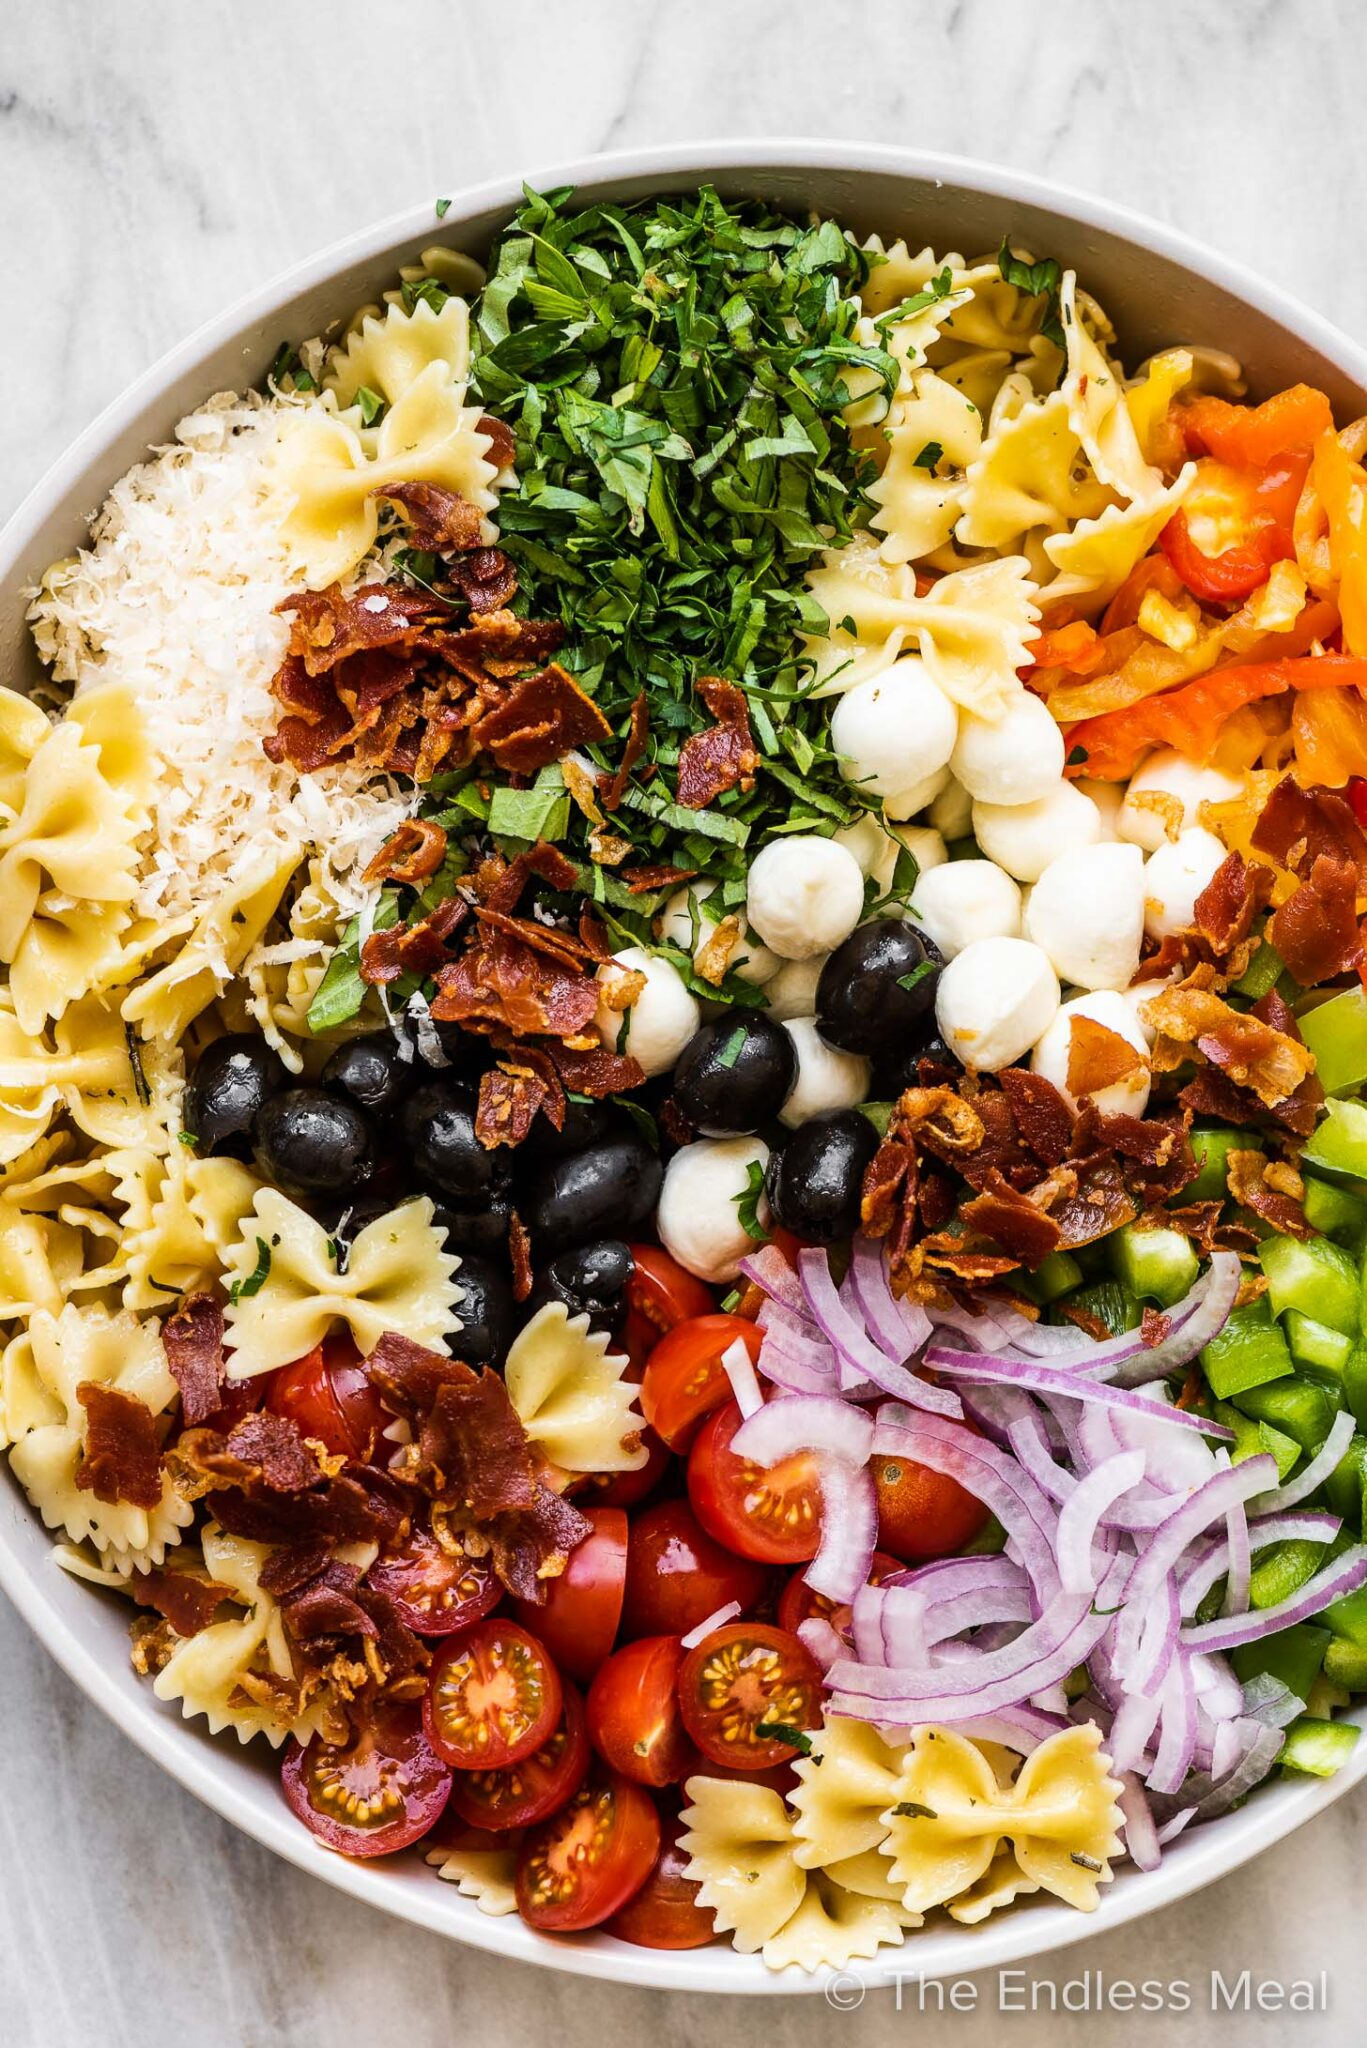 All the ingredients to make Italian pasta salad in a salad bowl.